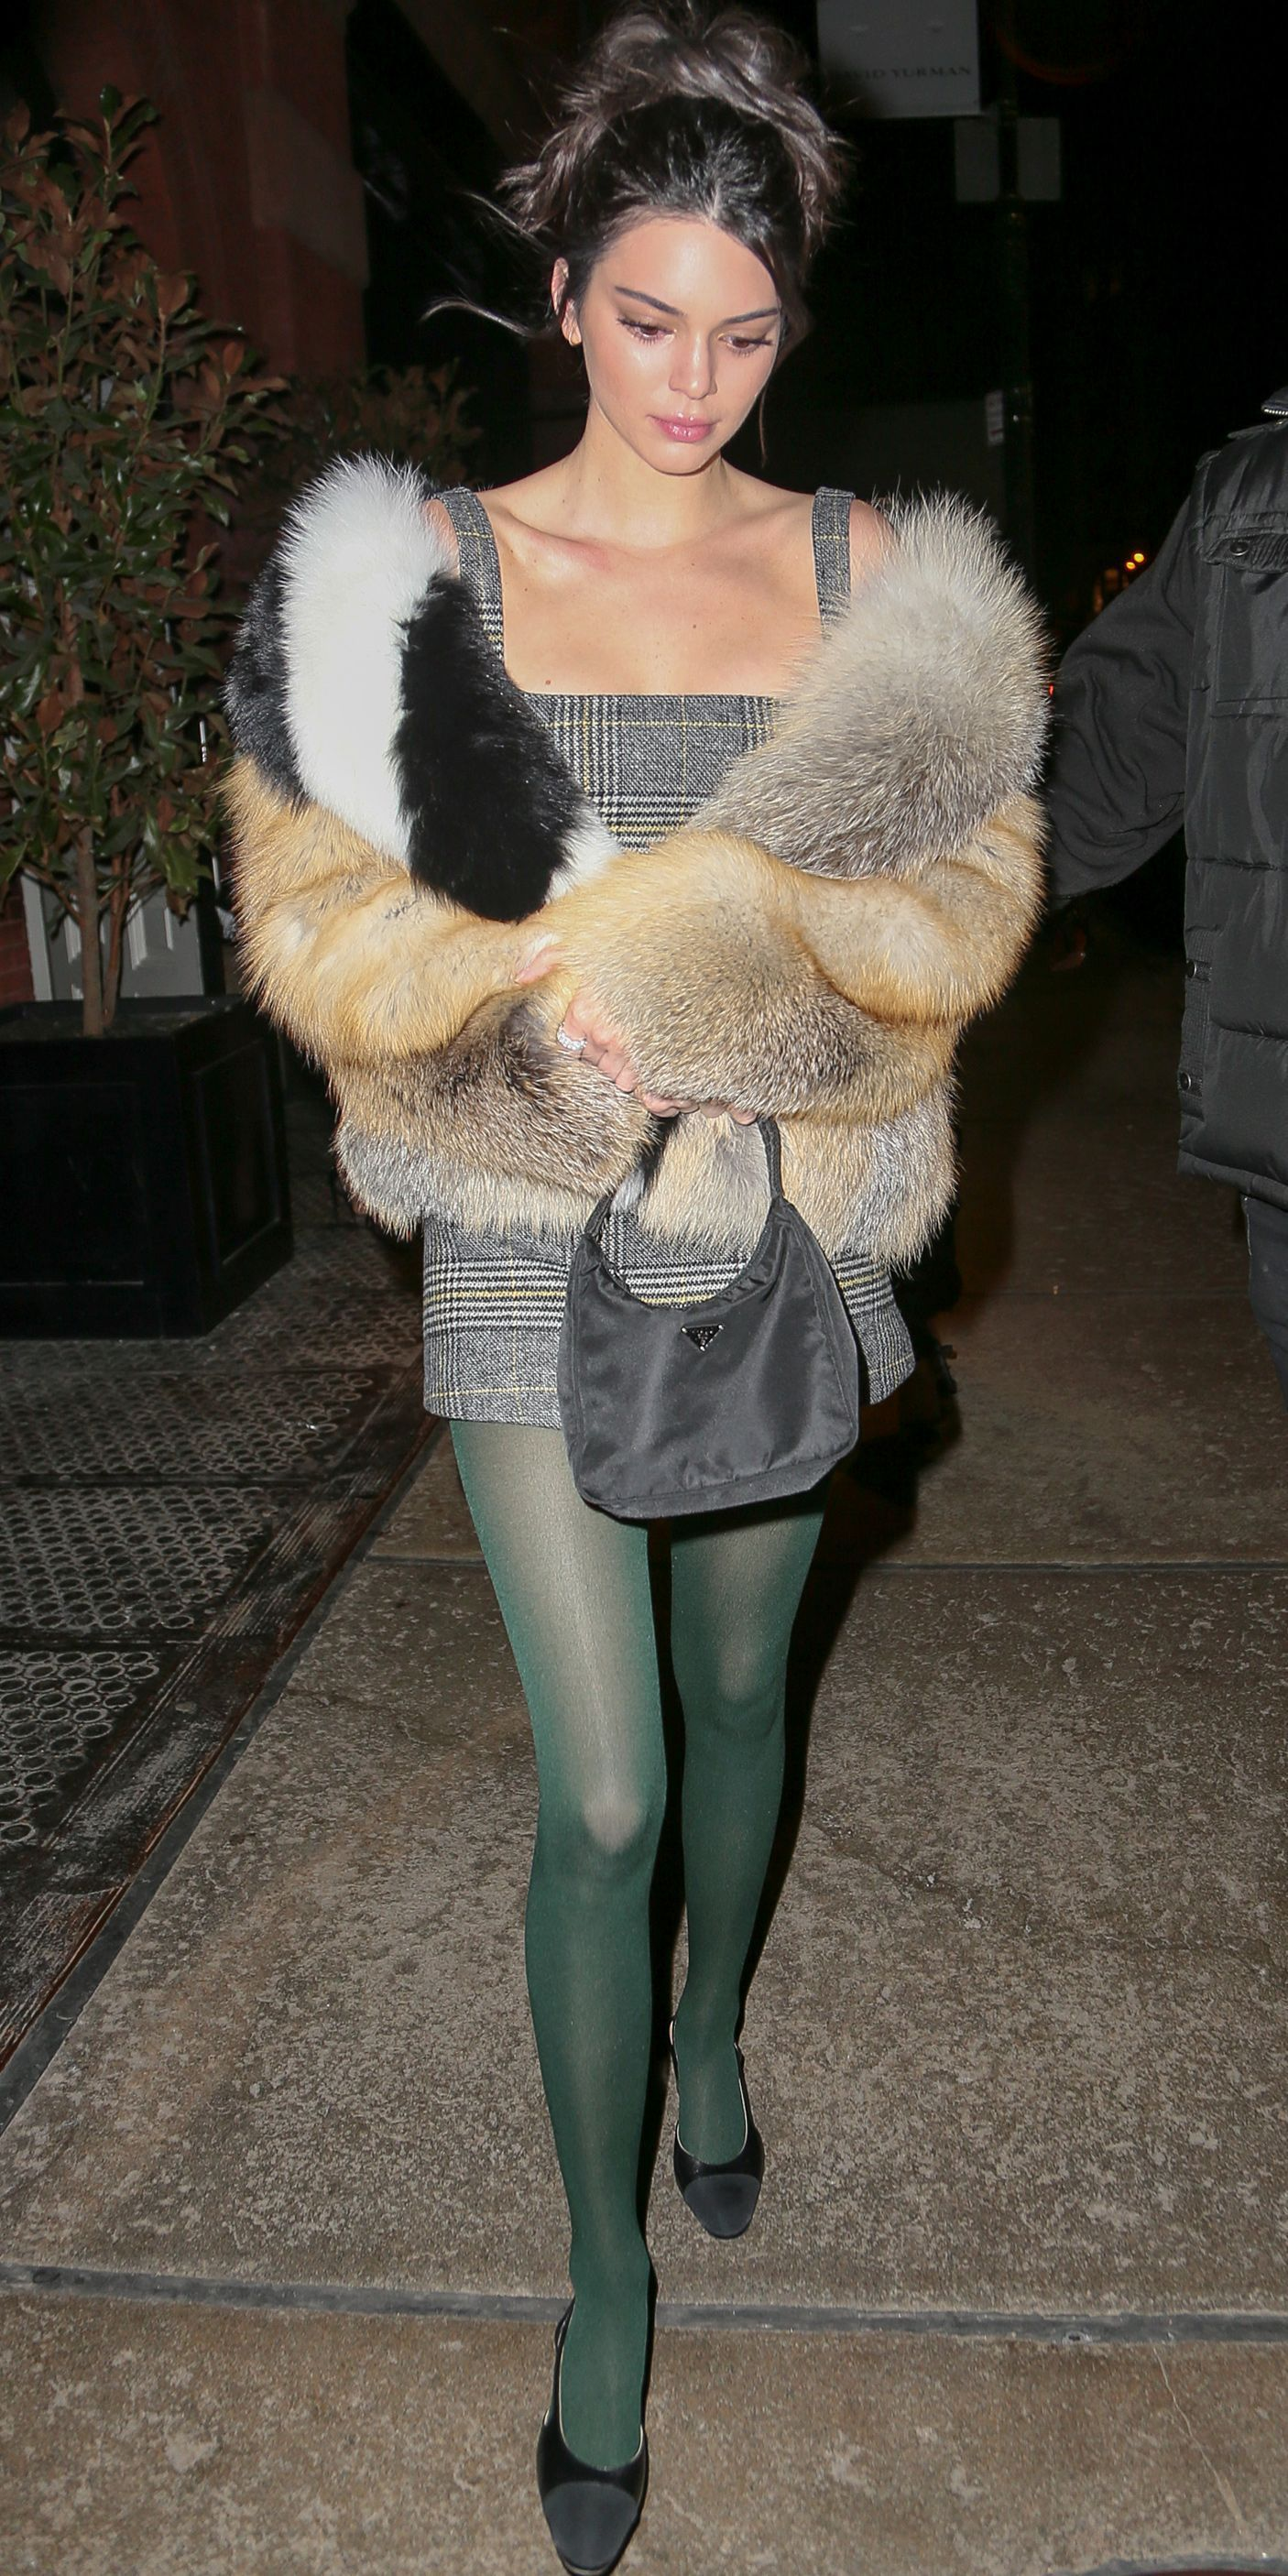 Image result for kendall jenner green tights